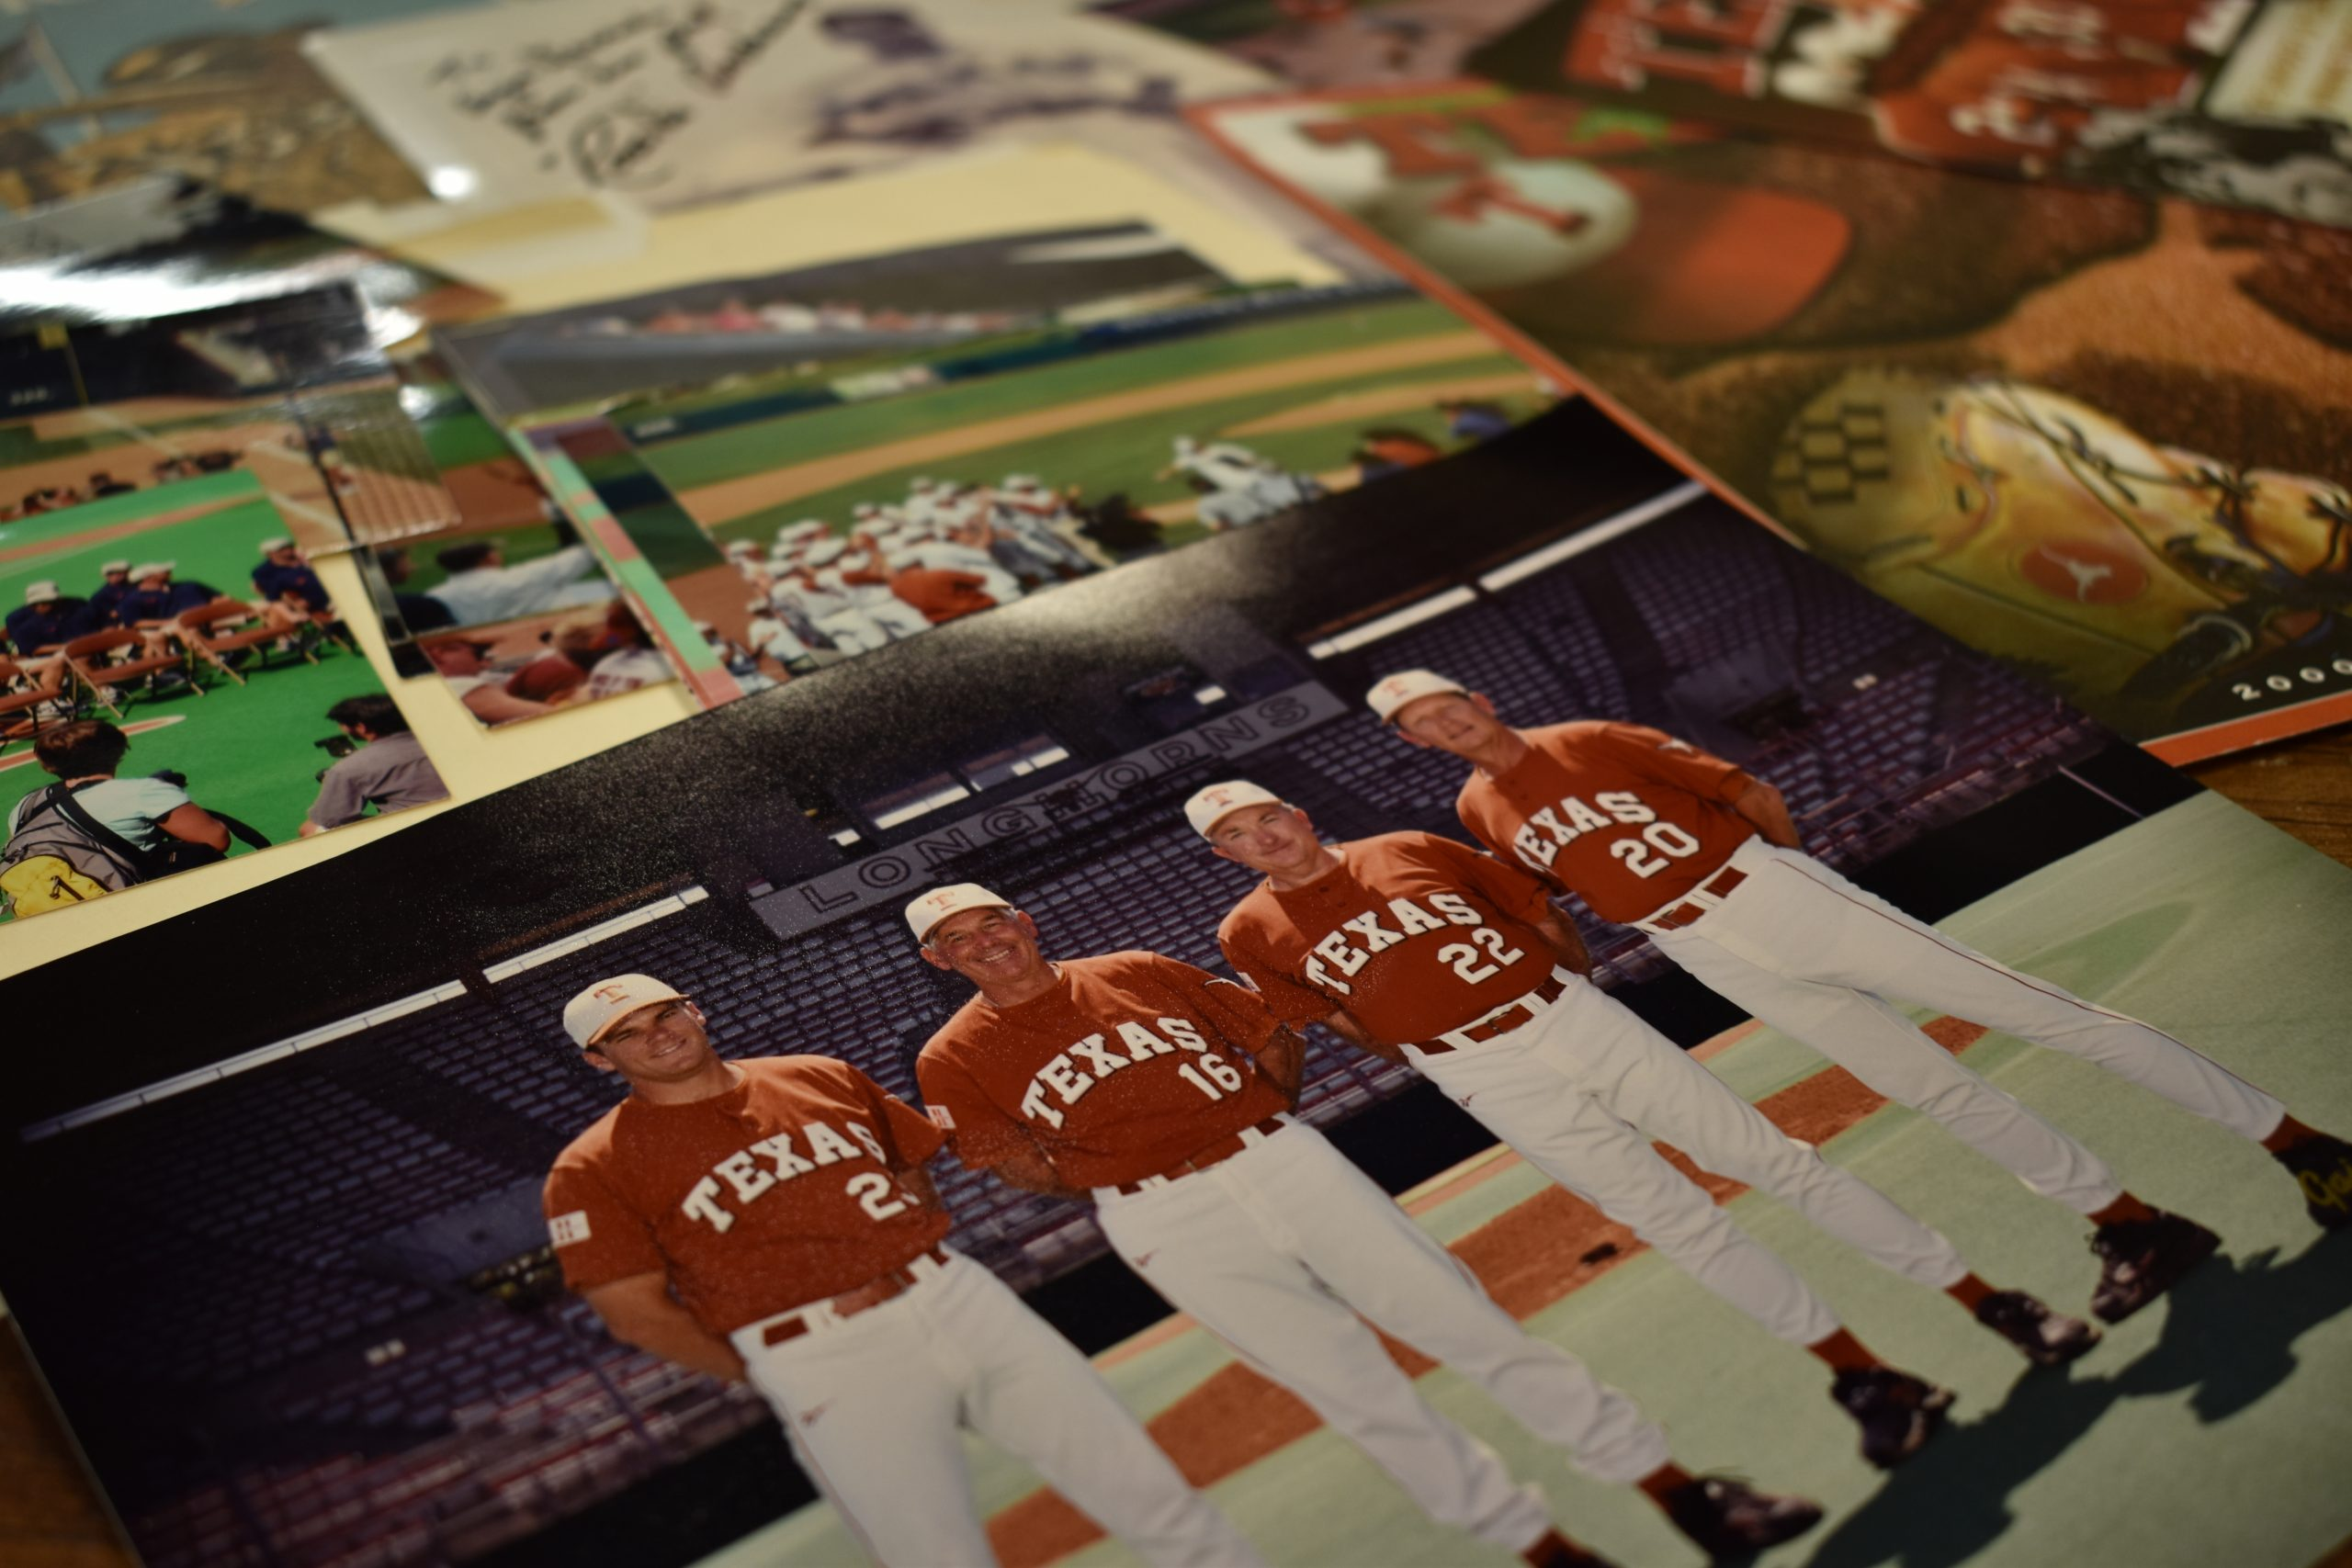 Two baseball media guides, a newspaper article and six photographs, relating to former University of Texas baseball coach Augie Garrido, from the Coach Augie Garrido Baseball Collection.